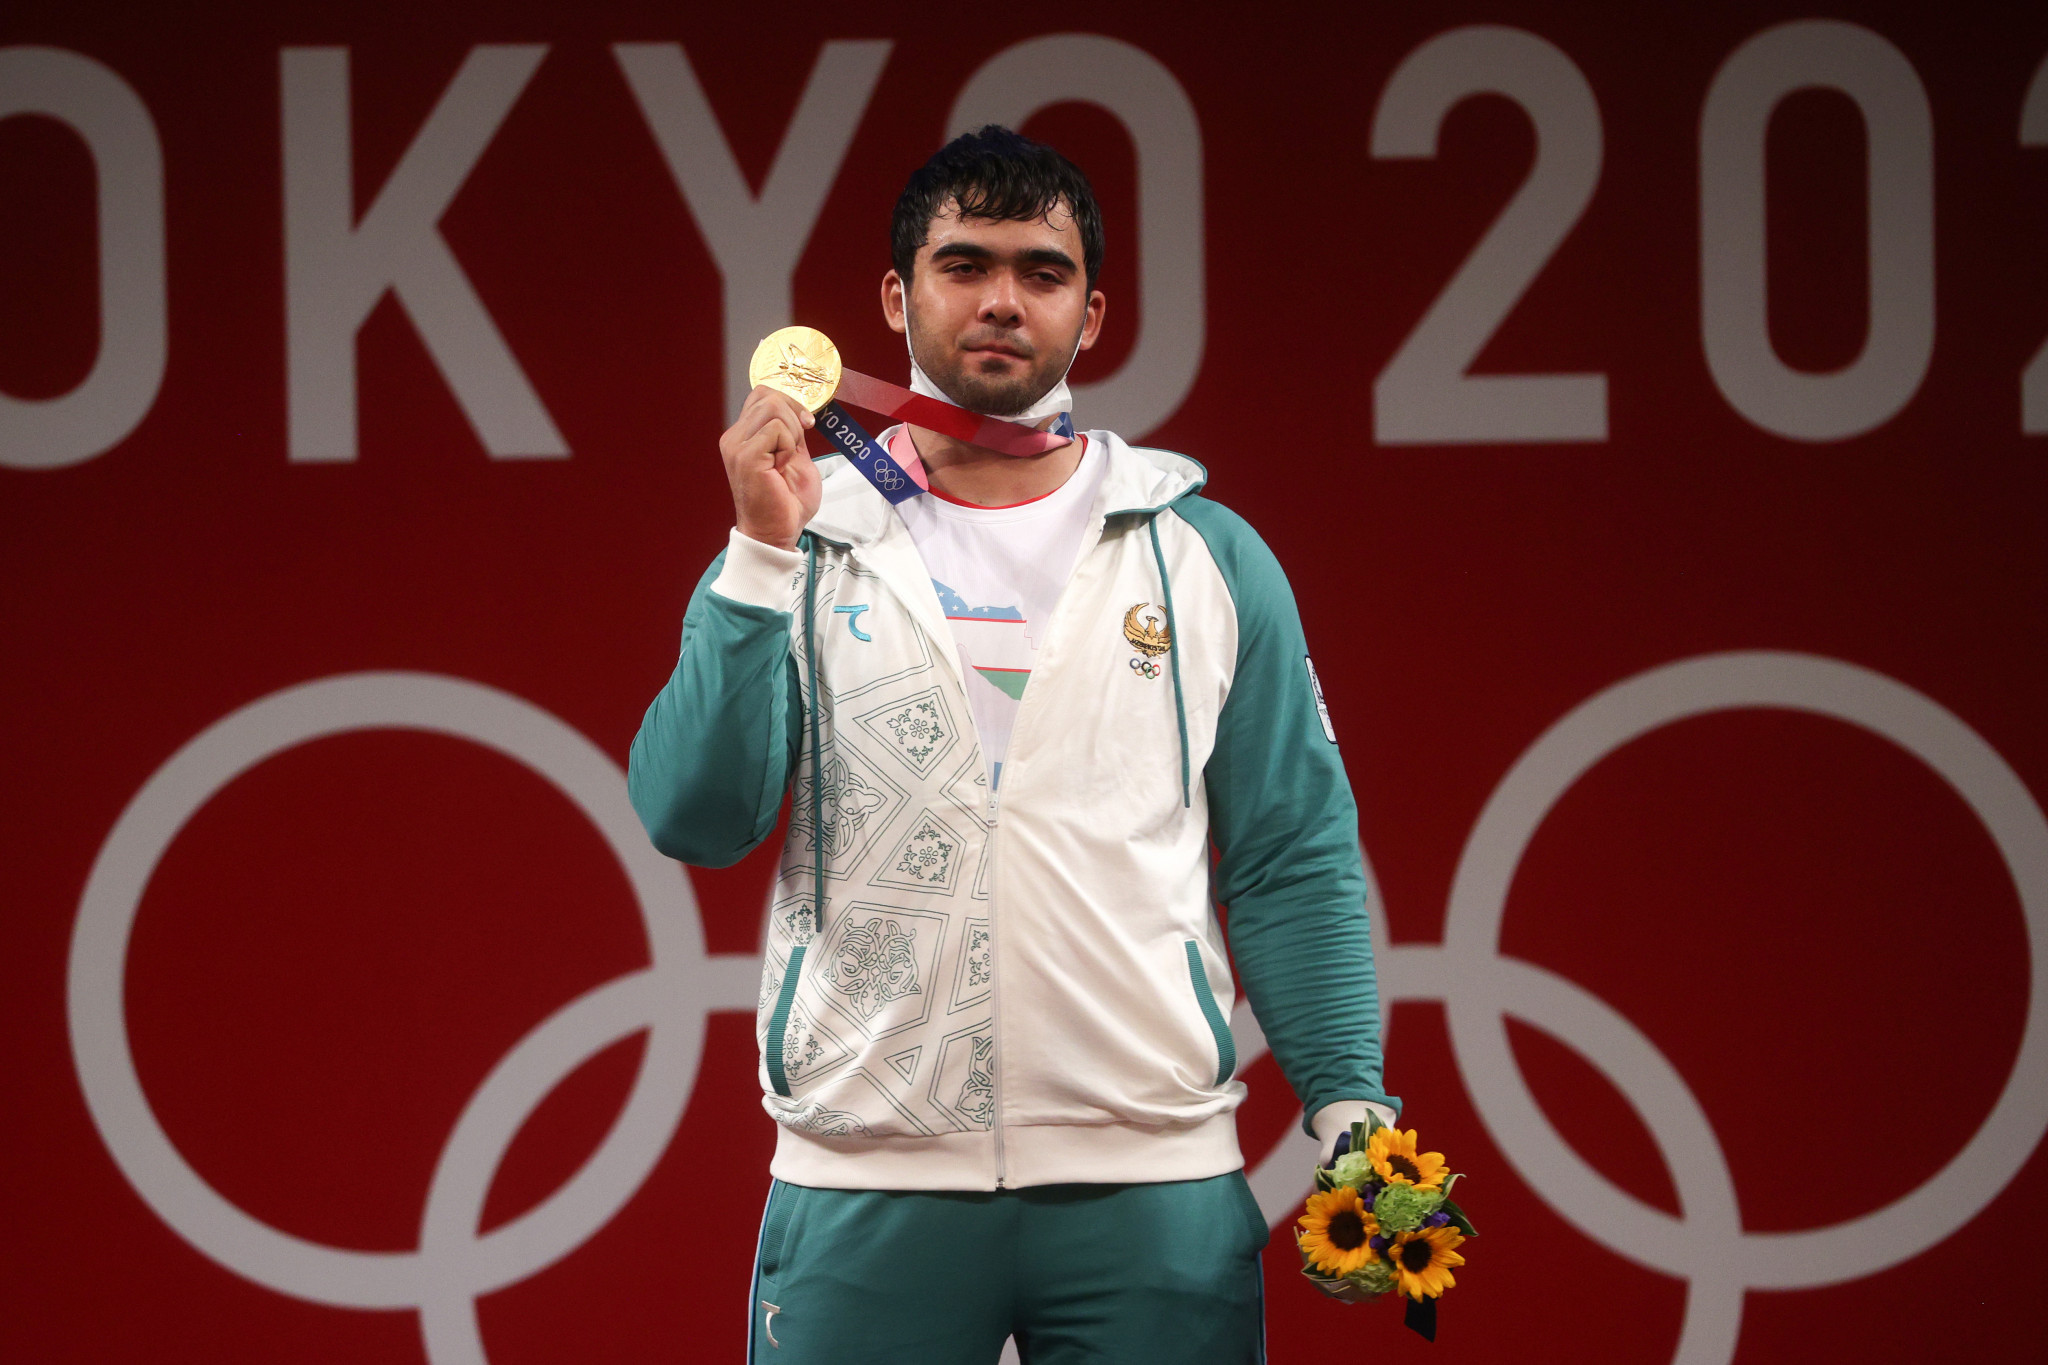 Europe still without weightlifting gold as Uzbekistan youngster Djuraev beats favourite at Tokyo 2020